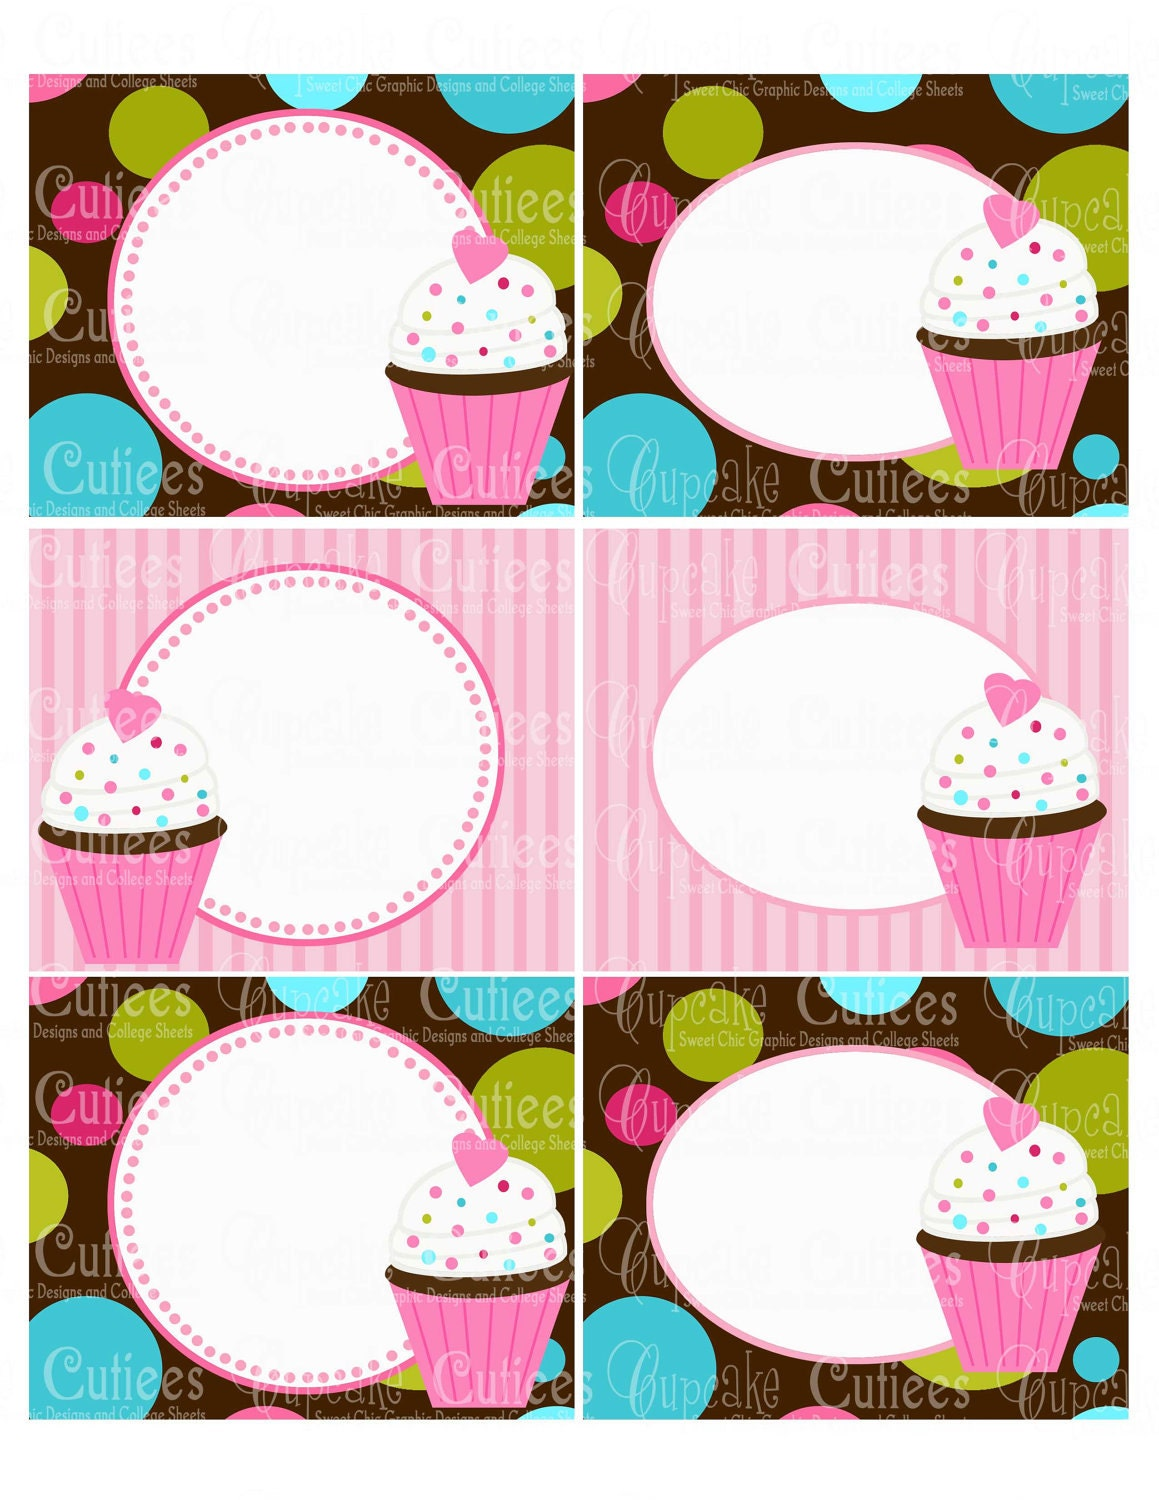 Funky Cupcake Brown Mod Digital Collage By Cupcakecutieesparty